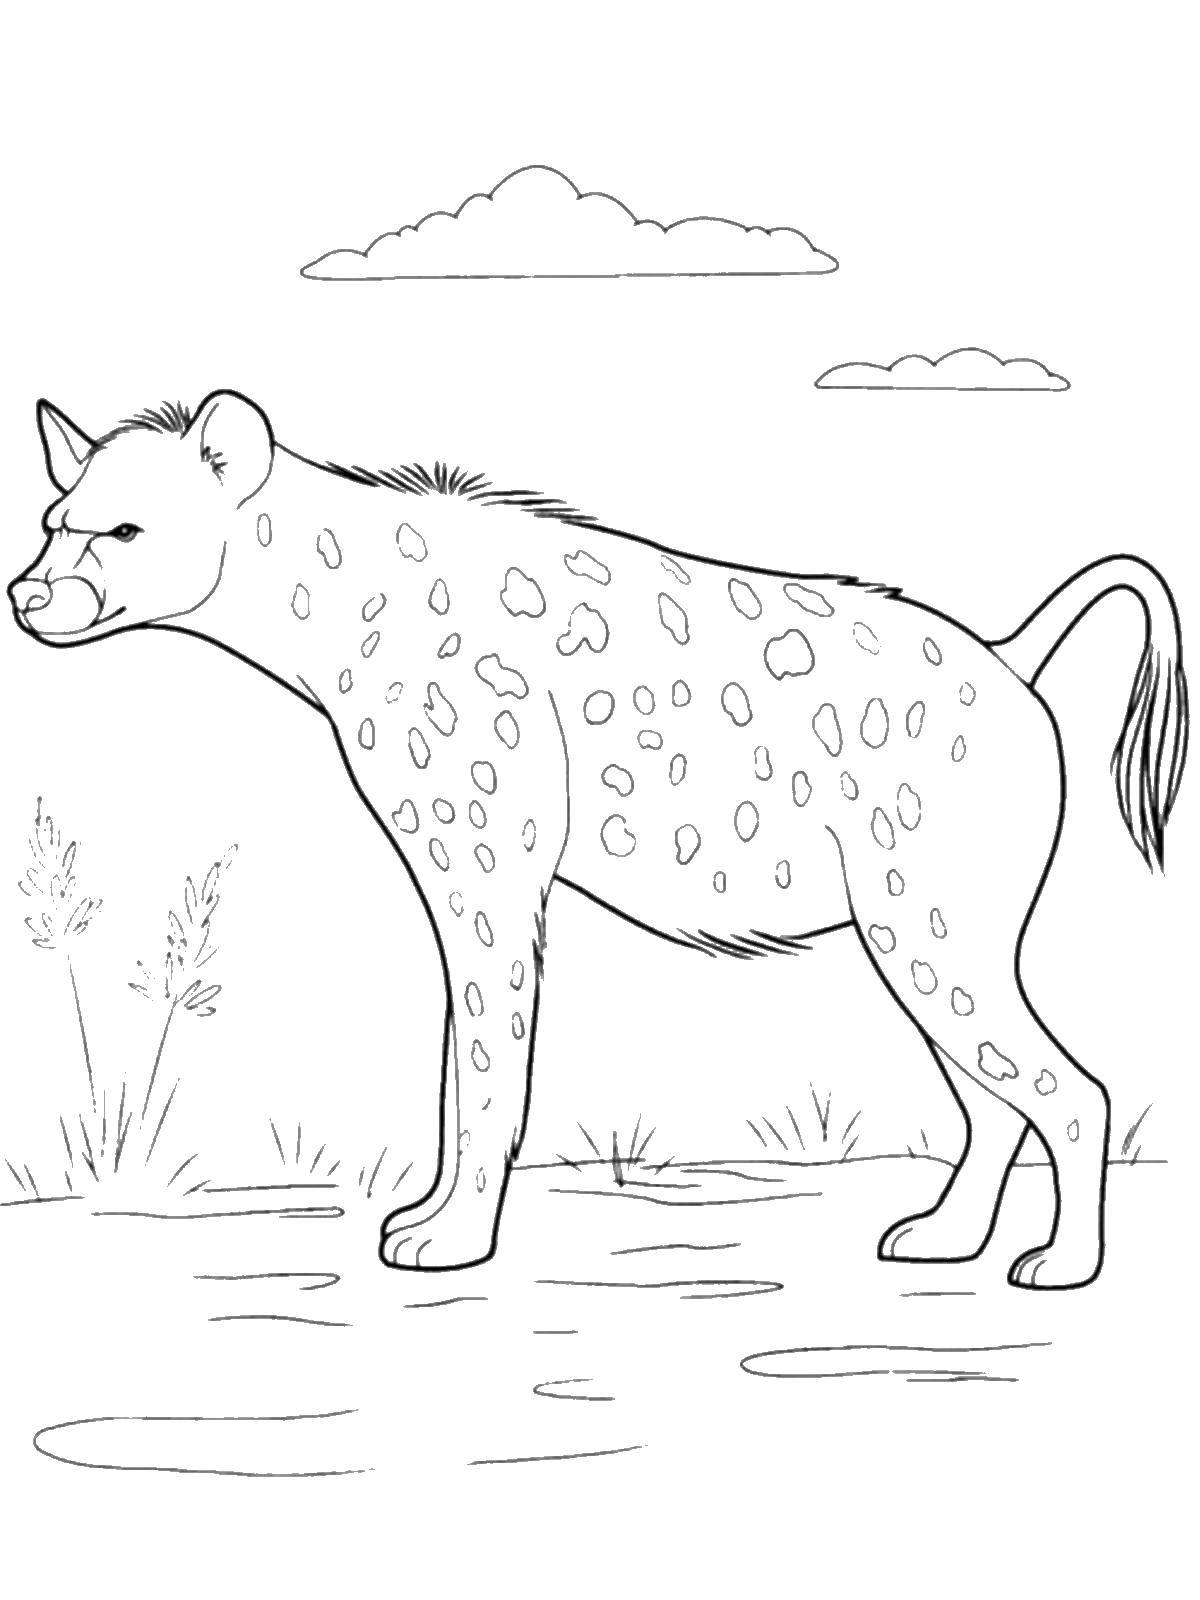 Coloring sheet wild animals Download Animals, horse,.  Print